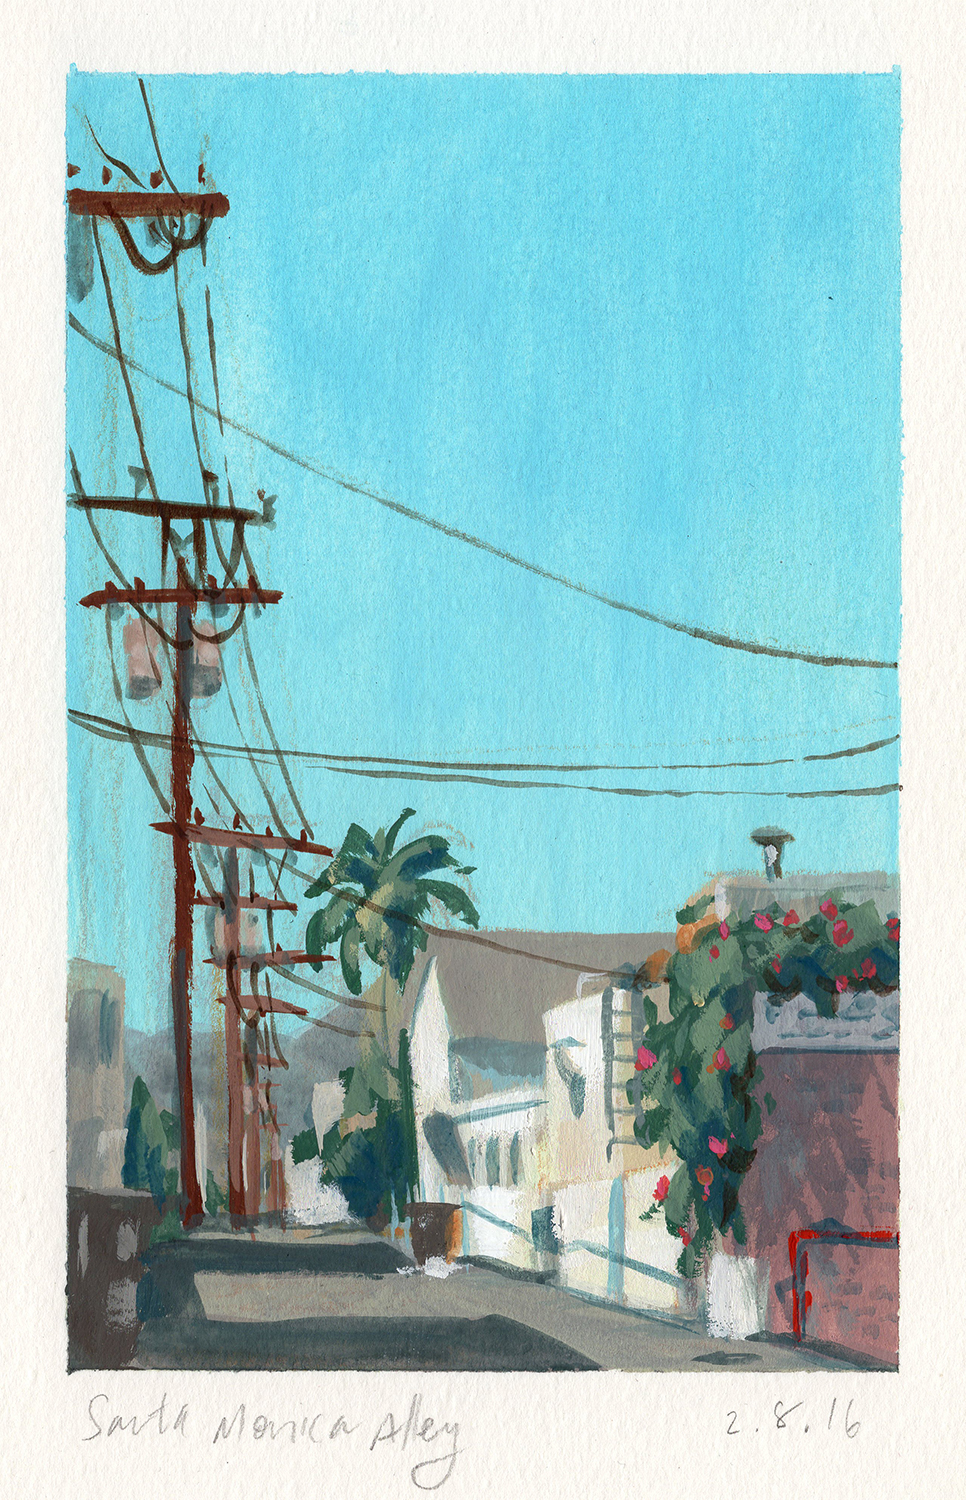 BillRobinson-SantaMonicaAlley.jpg